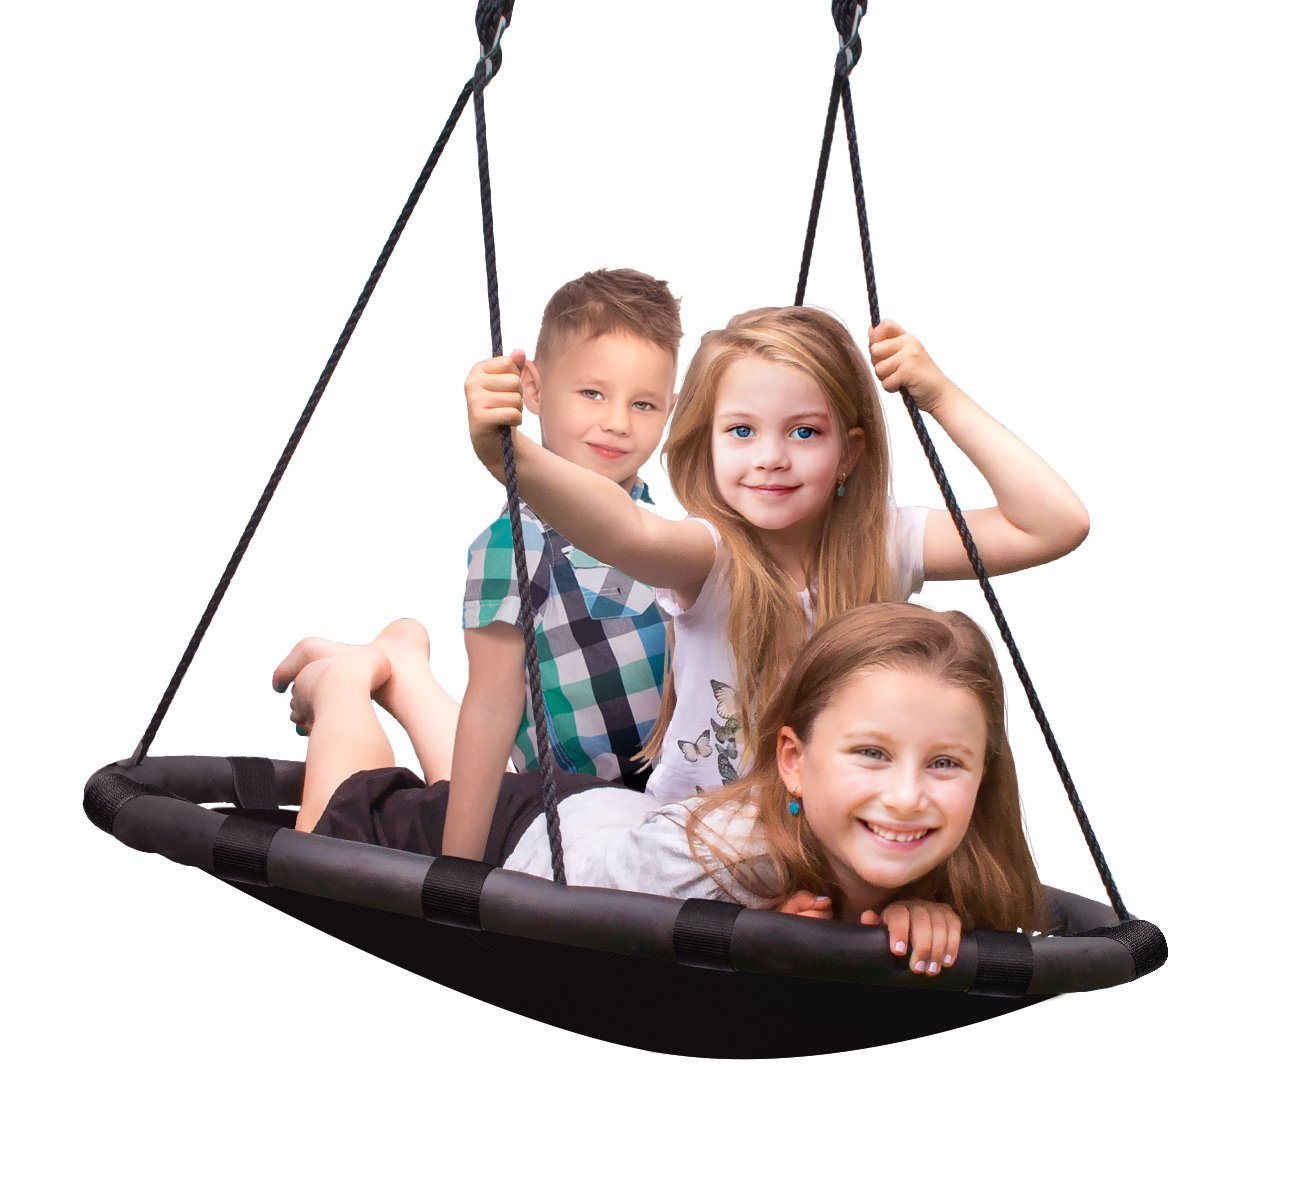 Sorbus Spinner Swing – Kids Indoor/Outdoor Round Mat Swing – Great for Tree, Swing Set, Backyard, Playground, Playroom – Accessories Included (40'' Mat Seat)